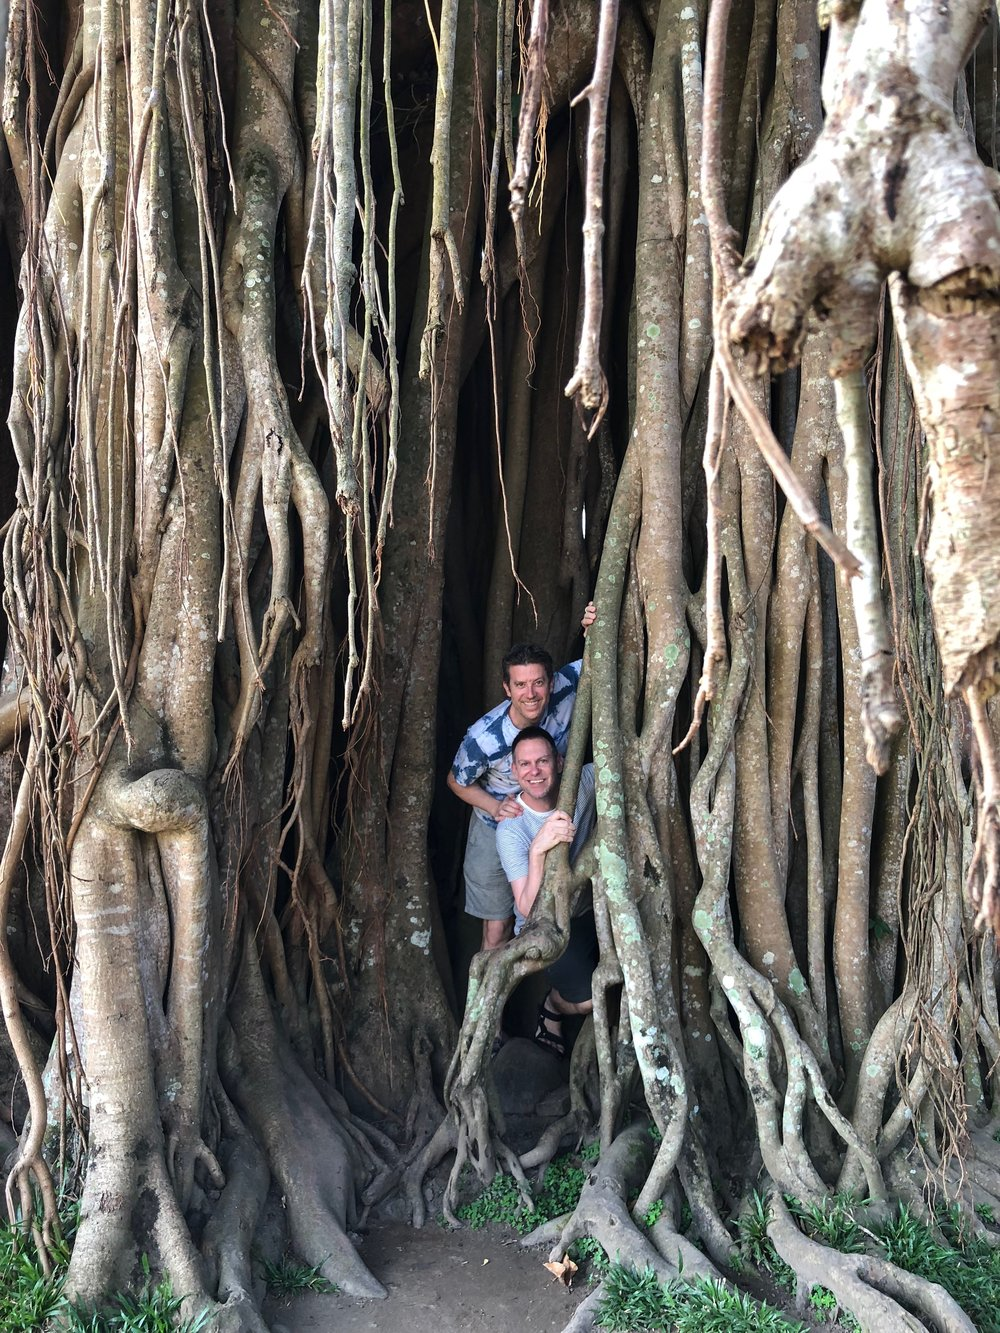 Banyan roots grow down from branches and become as solid as trunks, forming a cave of sorts